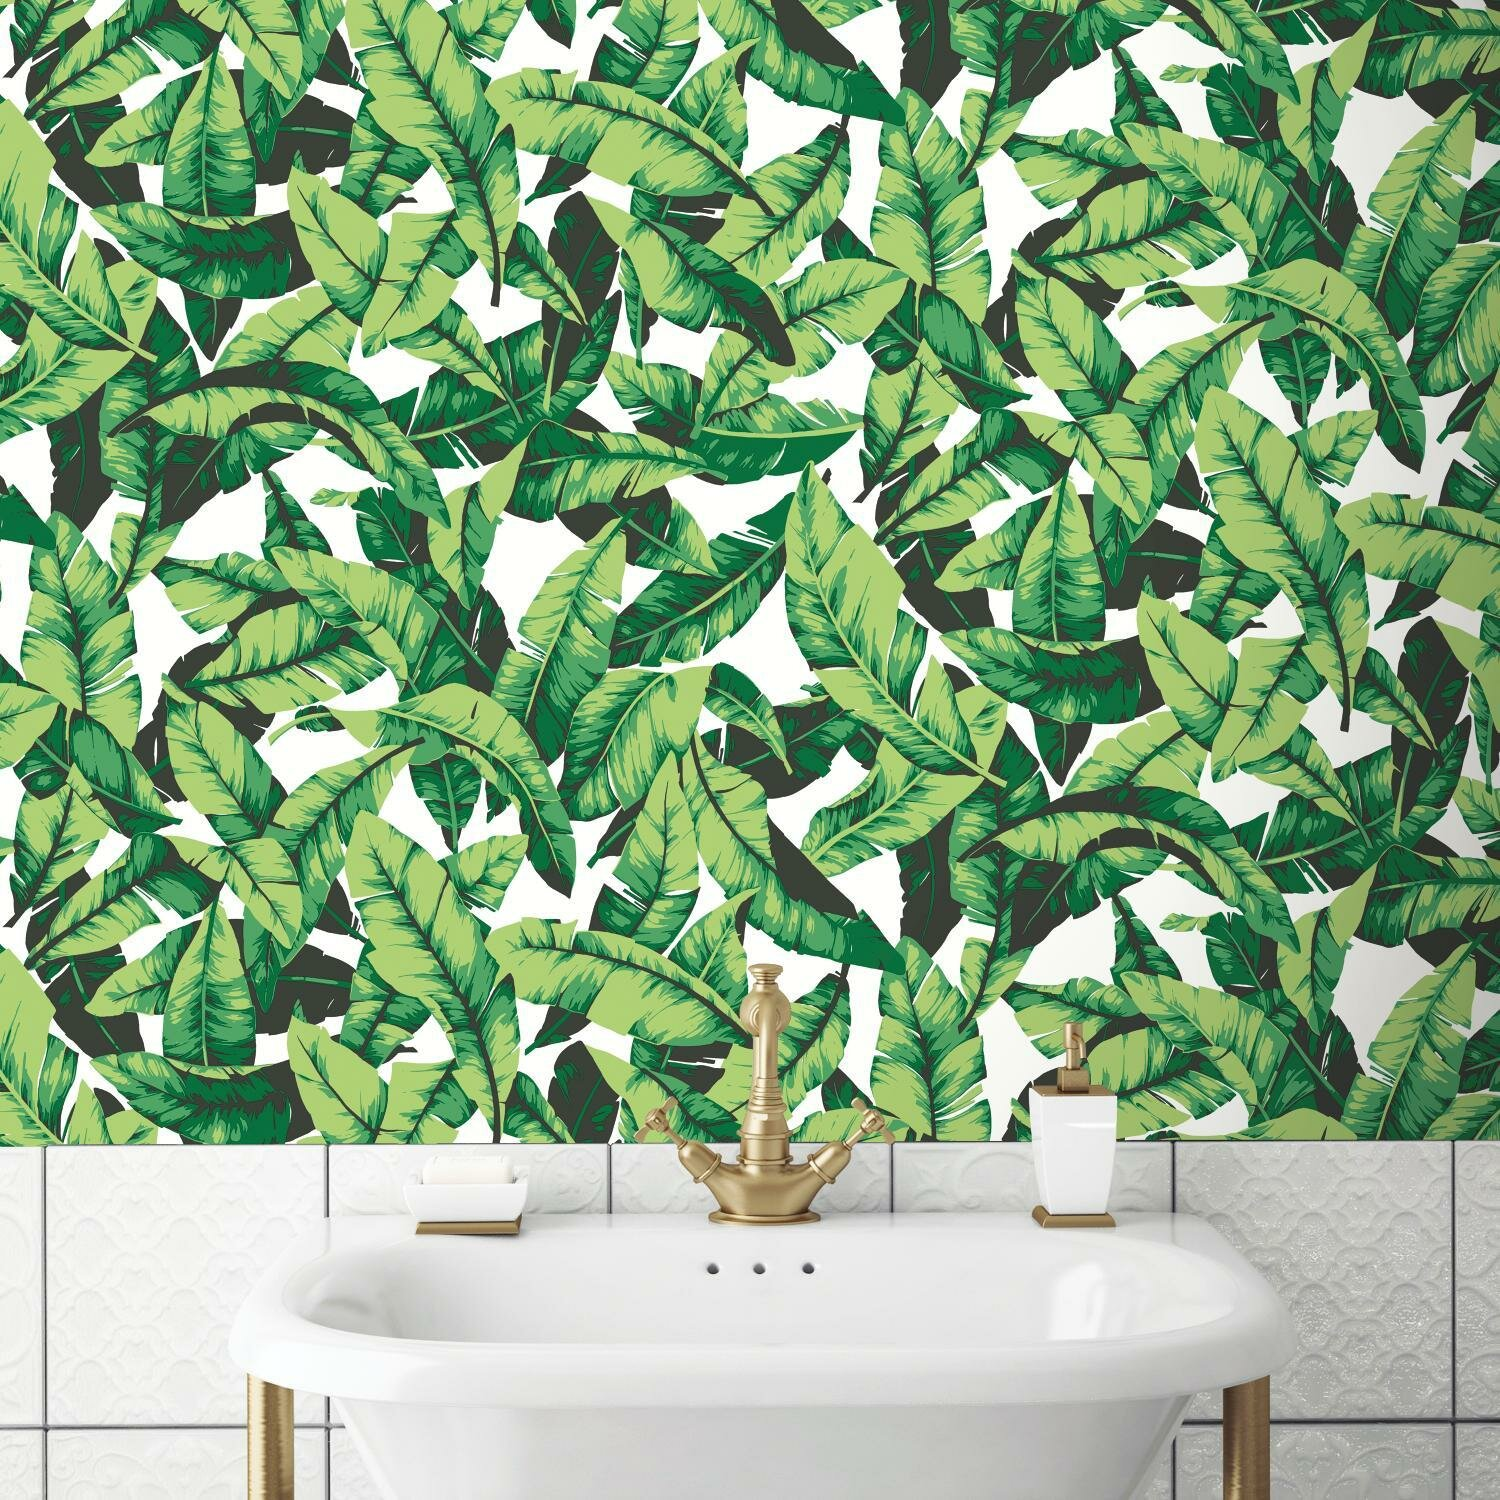 Oden Palm Leaf 16 5 L X 20 5 W Floral And Botanical Peel And